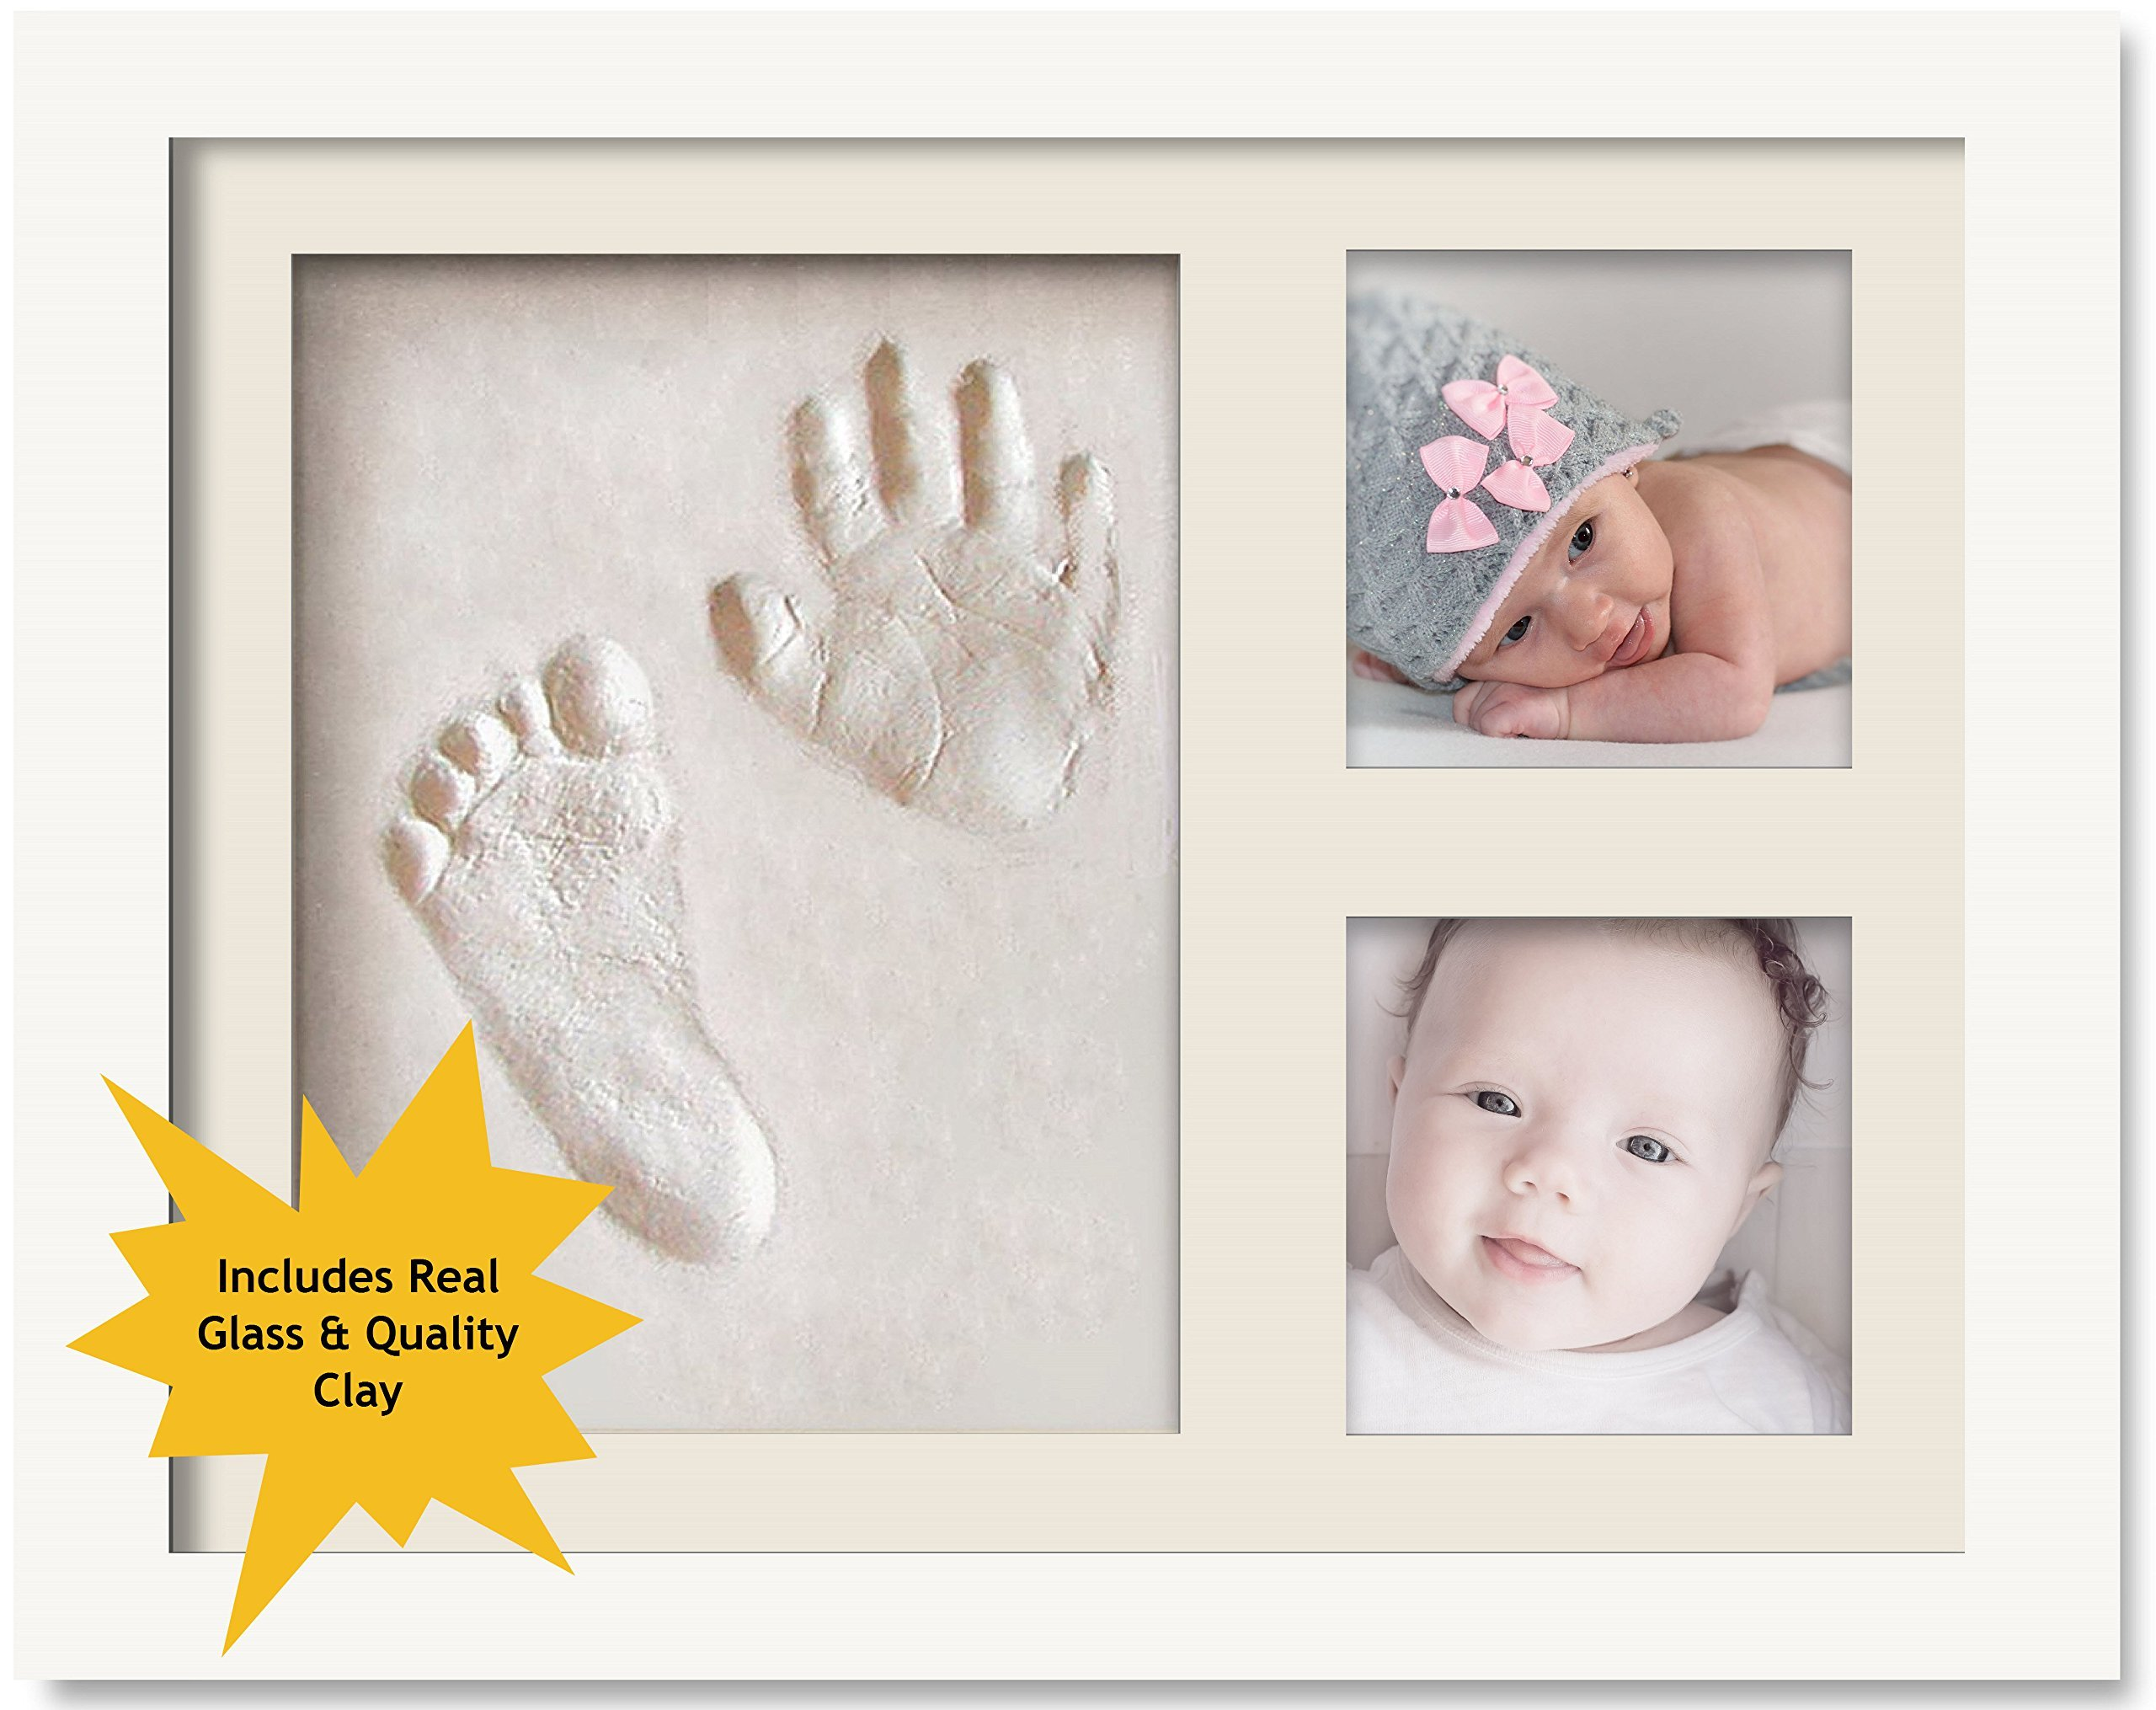 ImpressionMemories Baby Hand and Footprint Picture Frame - Wood Frame Keepsake Kit with Self-Drying Decorative Clay for Baby Handprint & Footprint - Memorable Boy and Girl Gift for Mother's, Father's